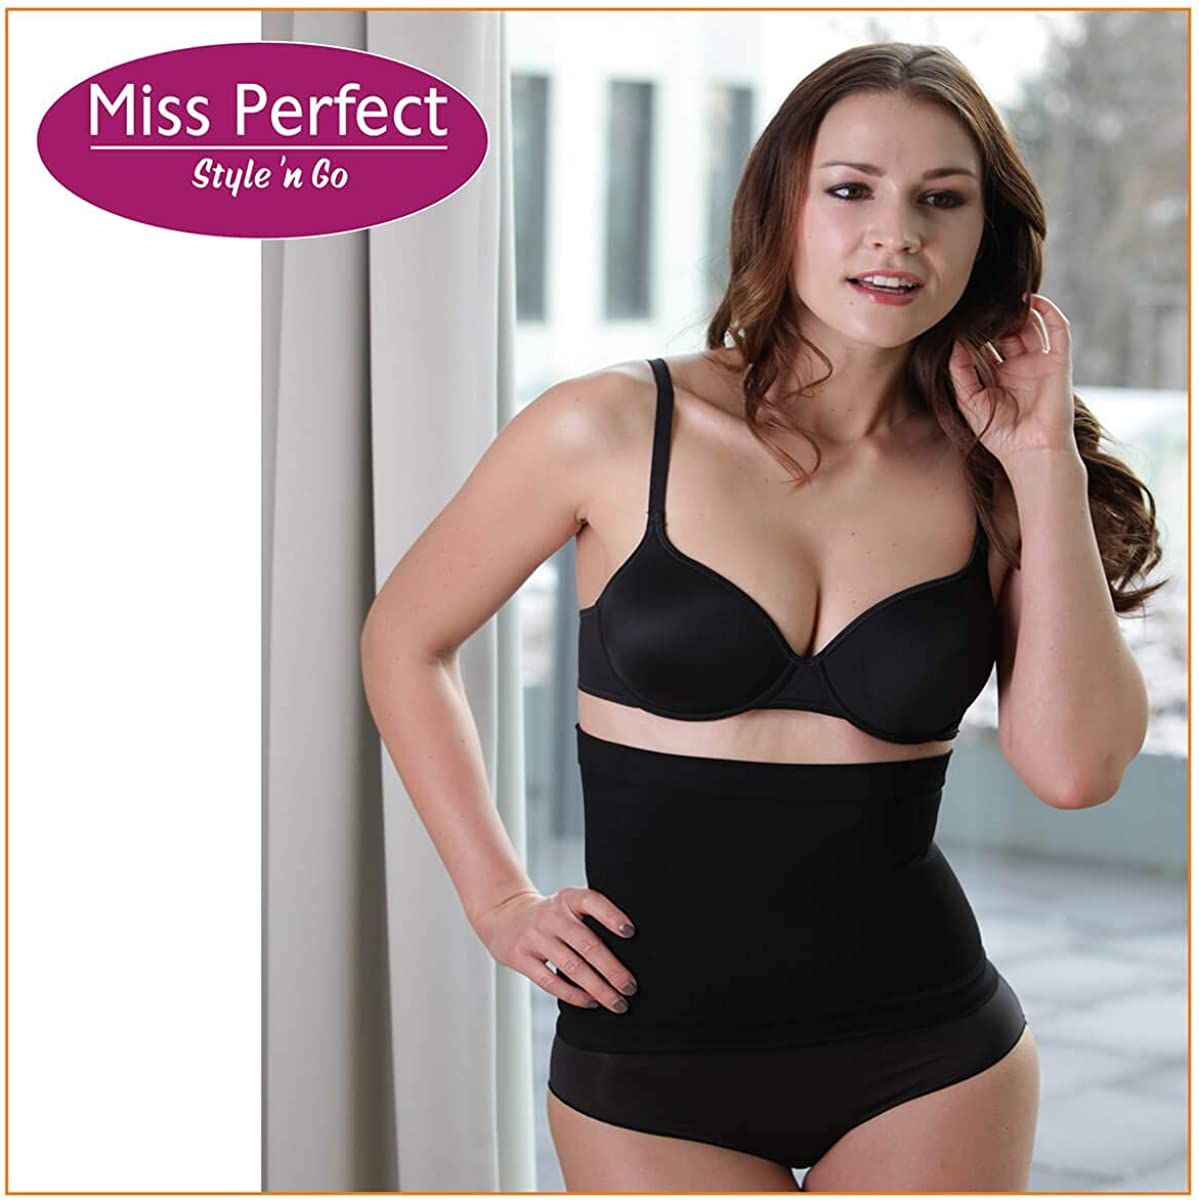 Body Shaper Damen Korsett Waist Trainer Korsage Damen Taillenformer Bauchweg S-XXL figurformend Miss Perfect Shapewear Damen